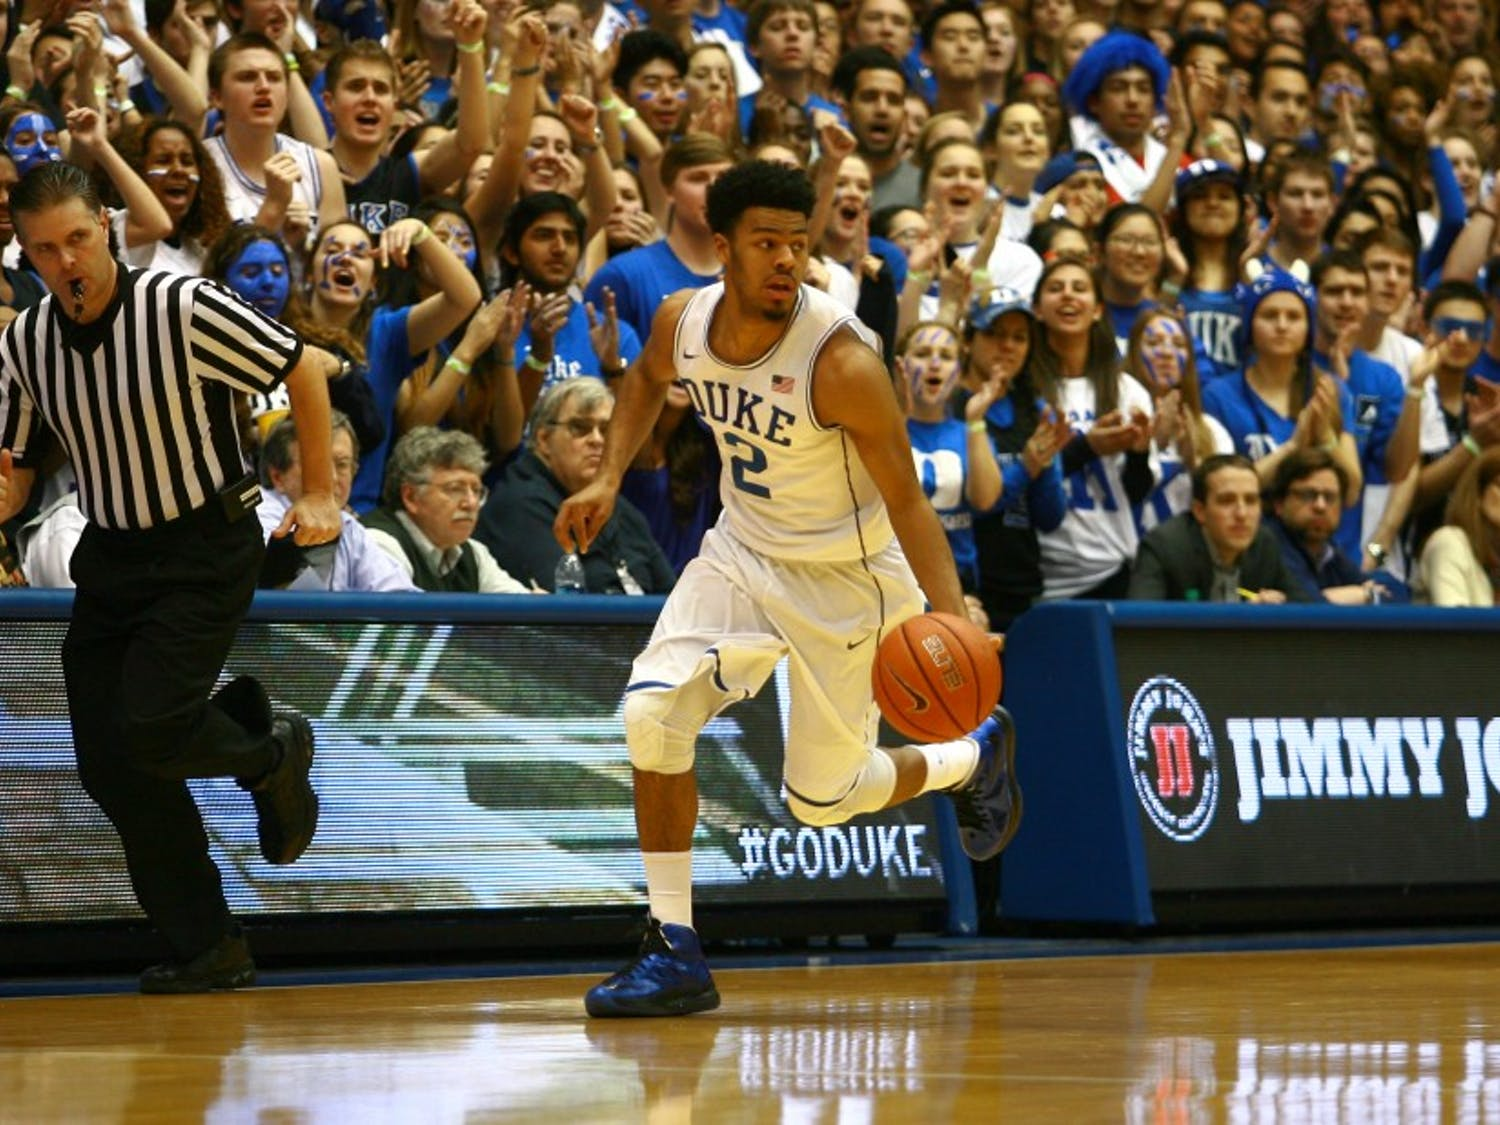 Senior Quinn Cook powered the Blue Devils to victory Wednesday, as his 17 points—all coming in the second half—led all scorers.